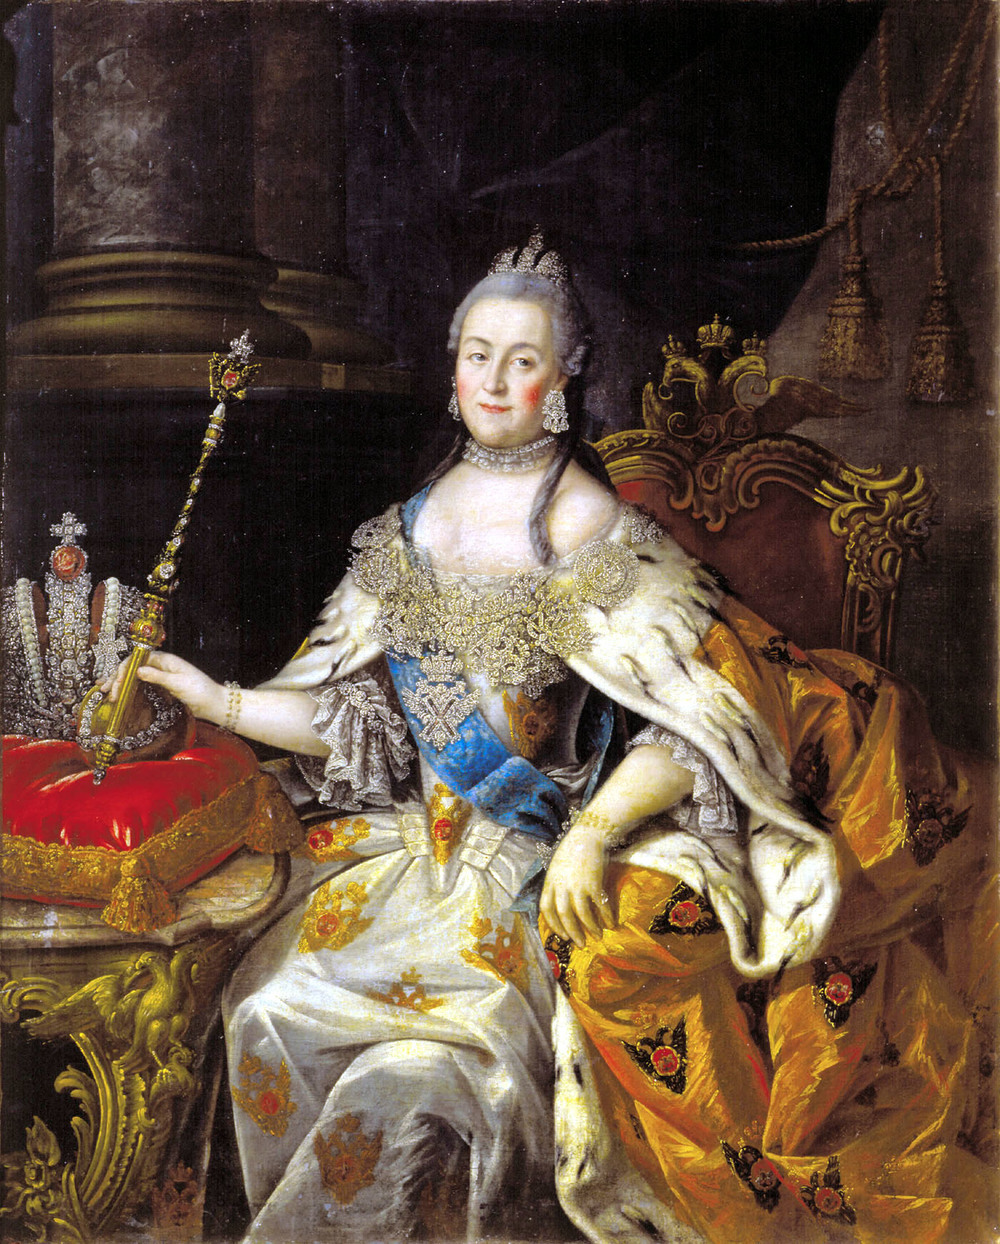 Catherine II (the Great) desired a contemporary coronation crown, in contrast with the traditional sable-trimmed Cap of Monomakh shown below. If Peter the Great is credited with Russia's cultural and political sea change, Catherine was inspired by her predecessor. In the portrait above, painted by Aleksey Antropov about three years after her 1762 coronation, the empress holds the imperial scepter, not yet set with the diamond she received from her former lover Grigory Orloff. The diadem she wears echoes the design of the full-size, five-pound crown at left. Painting by Alexei Antropov, ca. 1765.